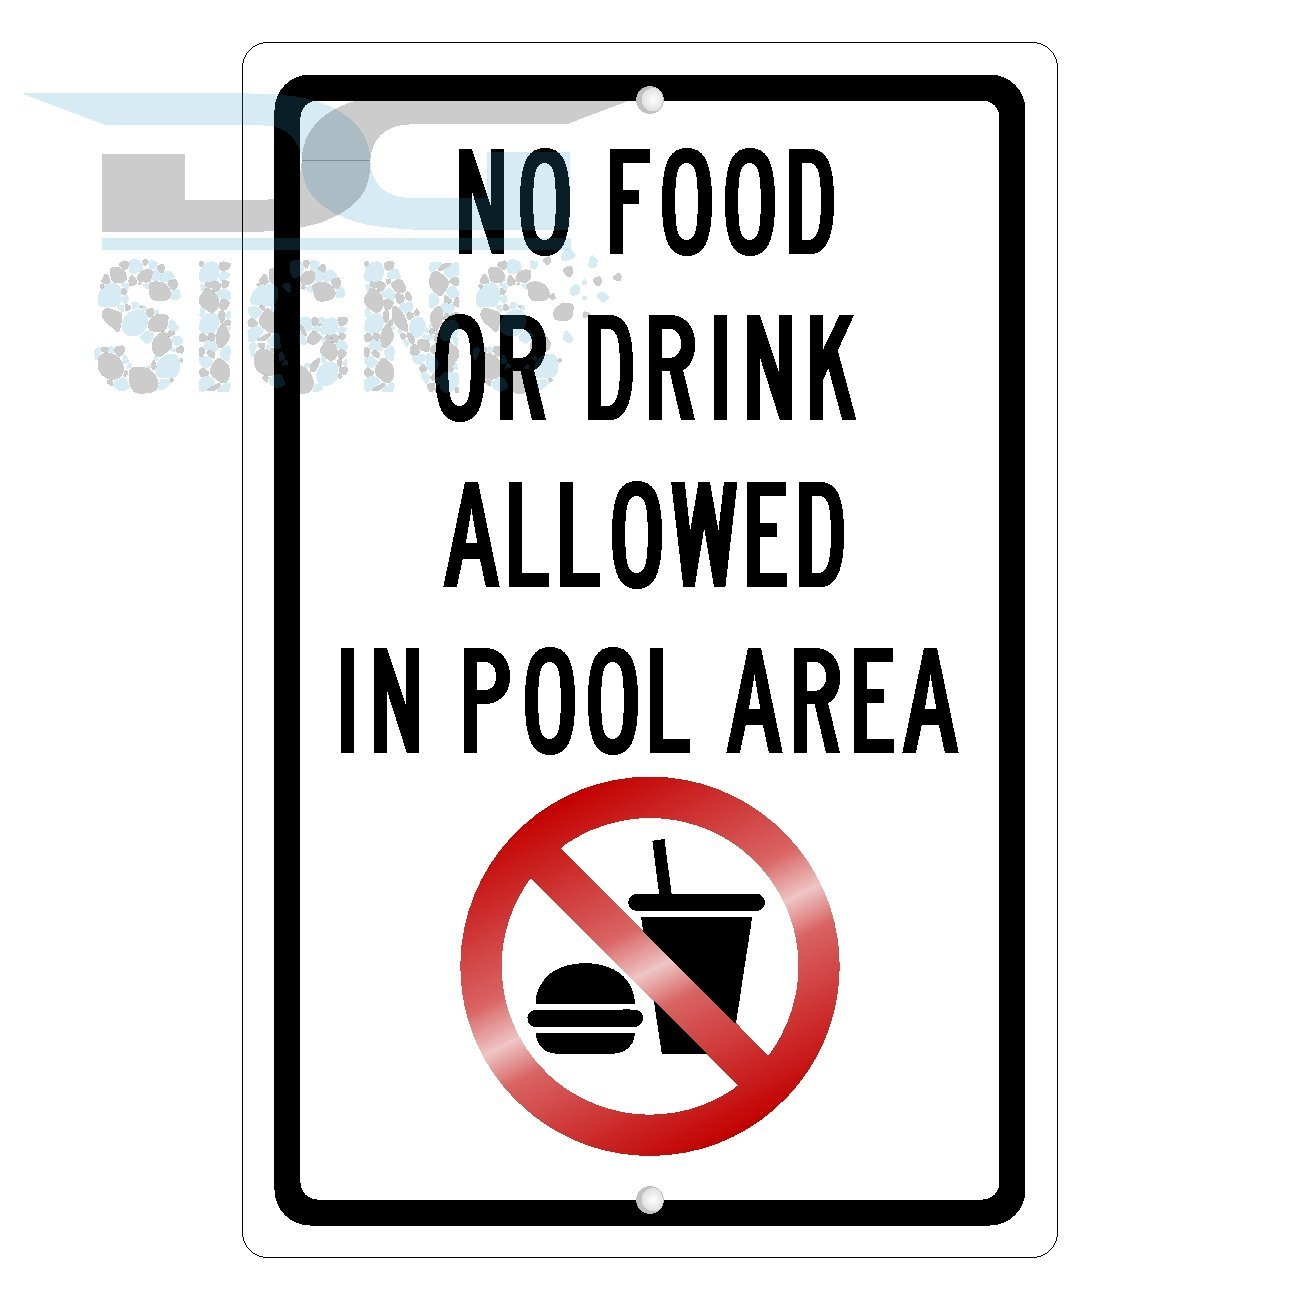 No Food Or Drink Allowed in Pool Area Symbol Aluminum Sign